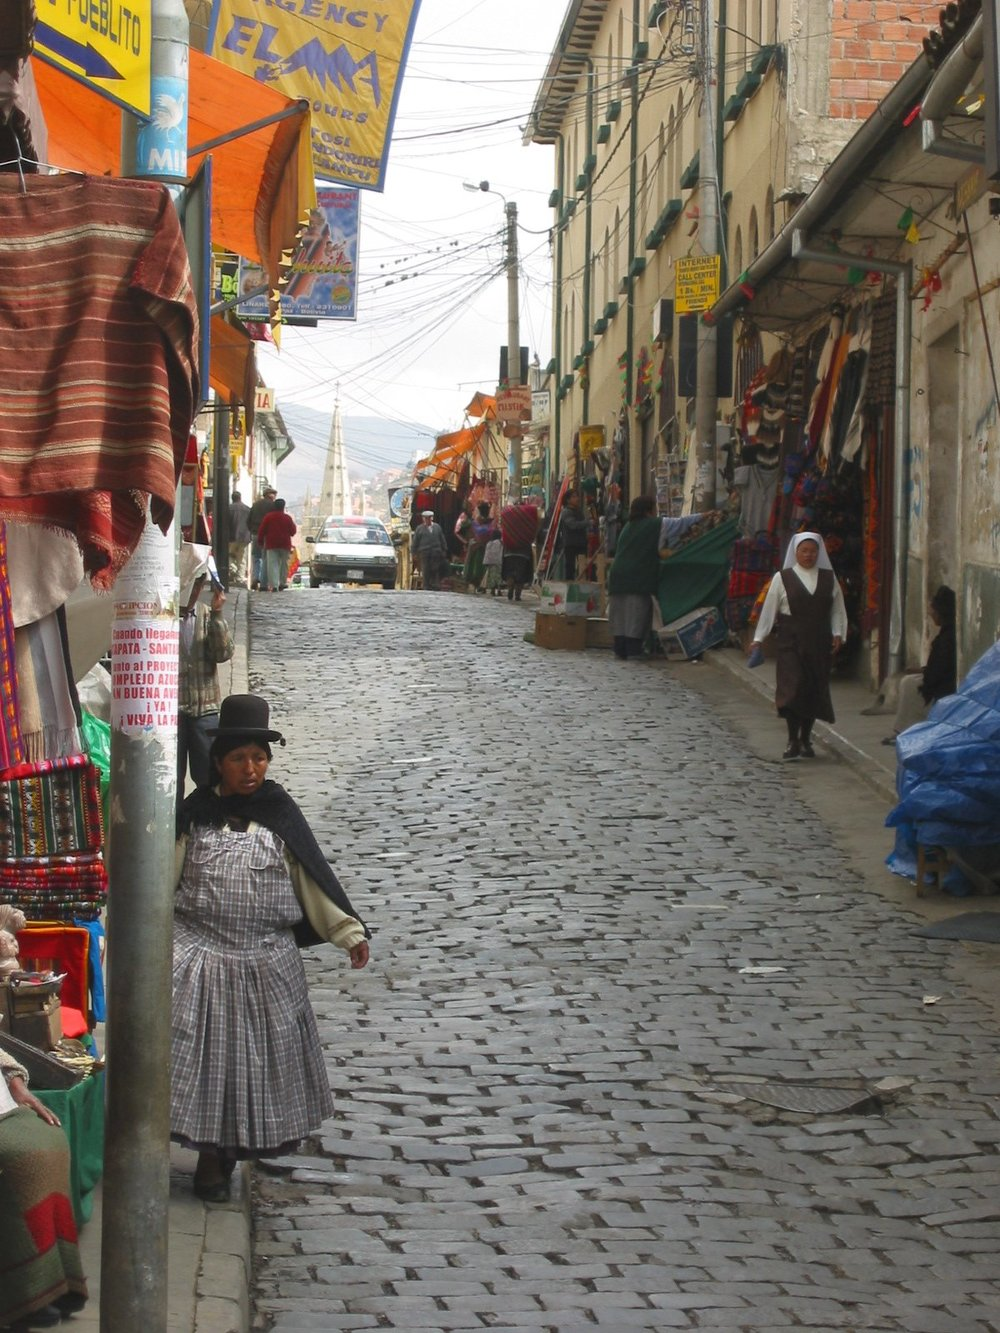 Cobble-stone streets of LaPaz